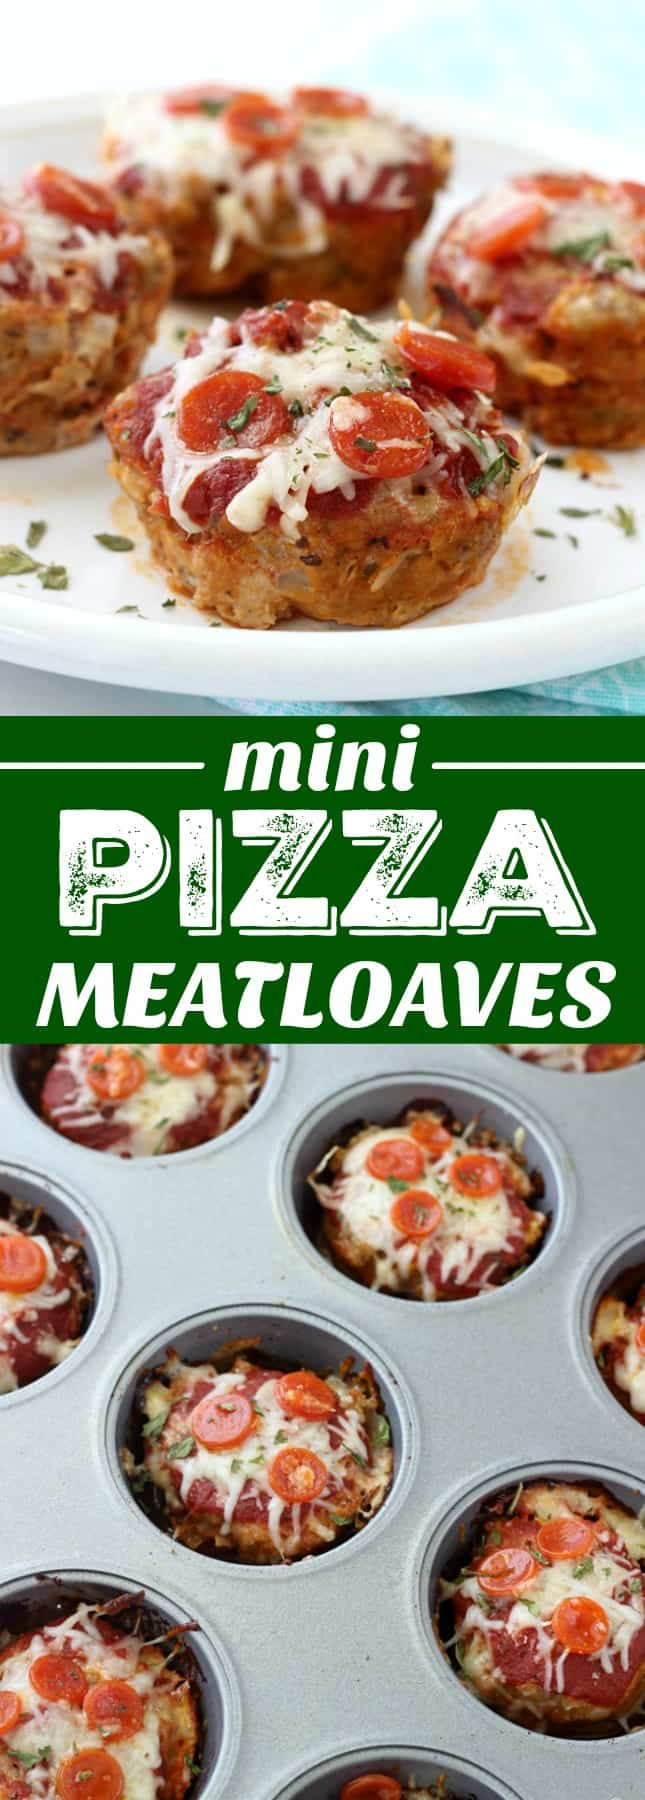 These Mini Pizza Meatloaves are a fun twist on traditional meatloaf! They're made pizza style and come in at under 150 calories each thanks to ground turkey!